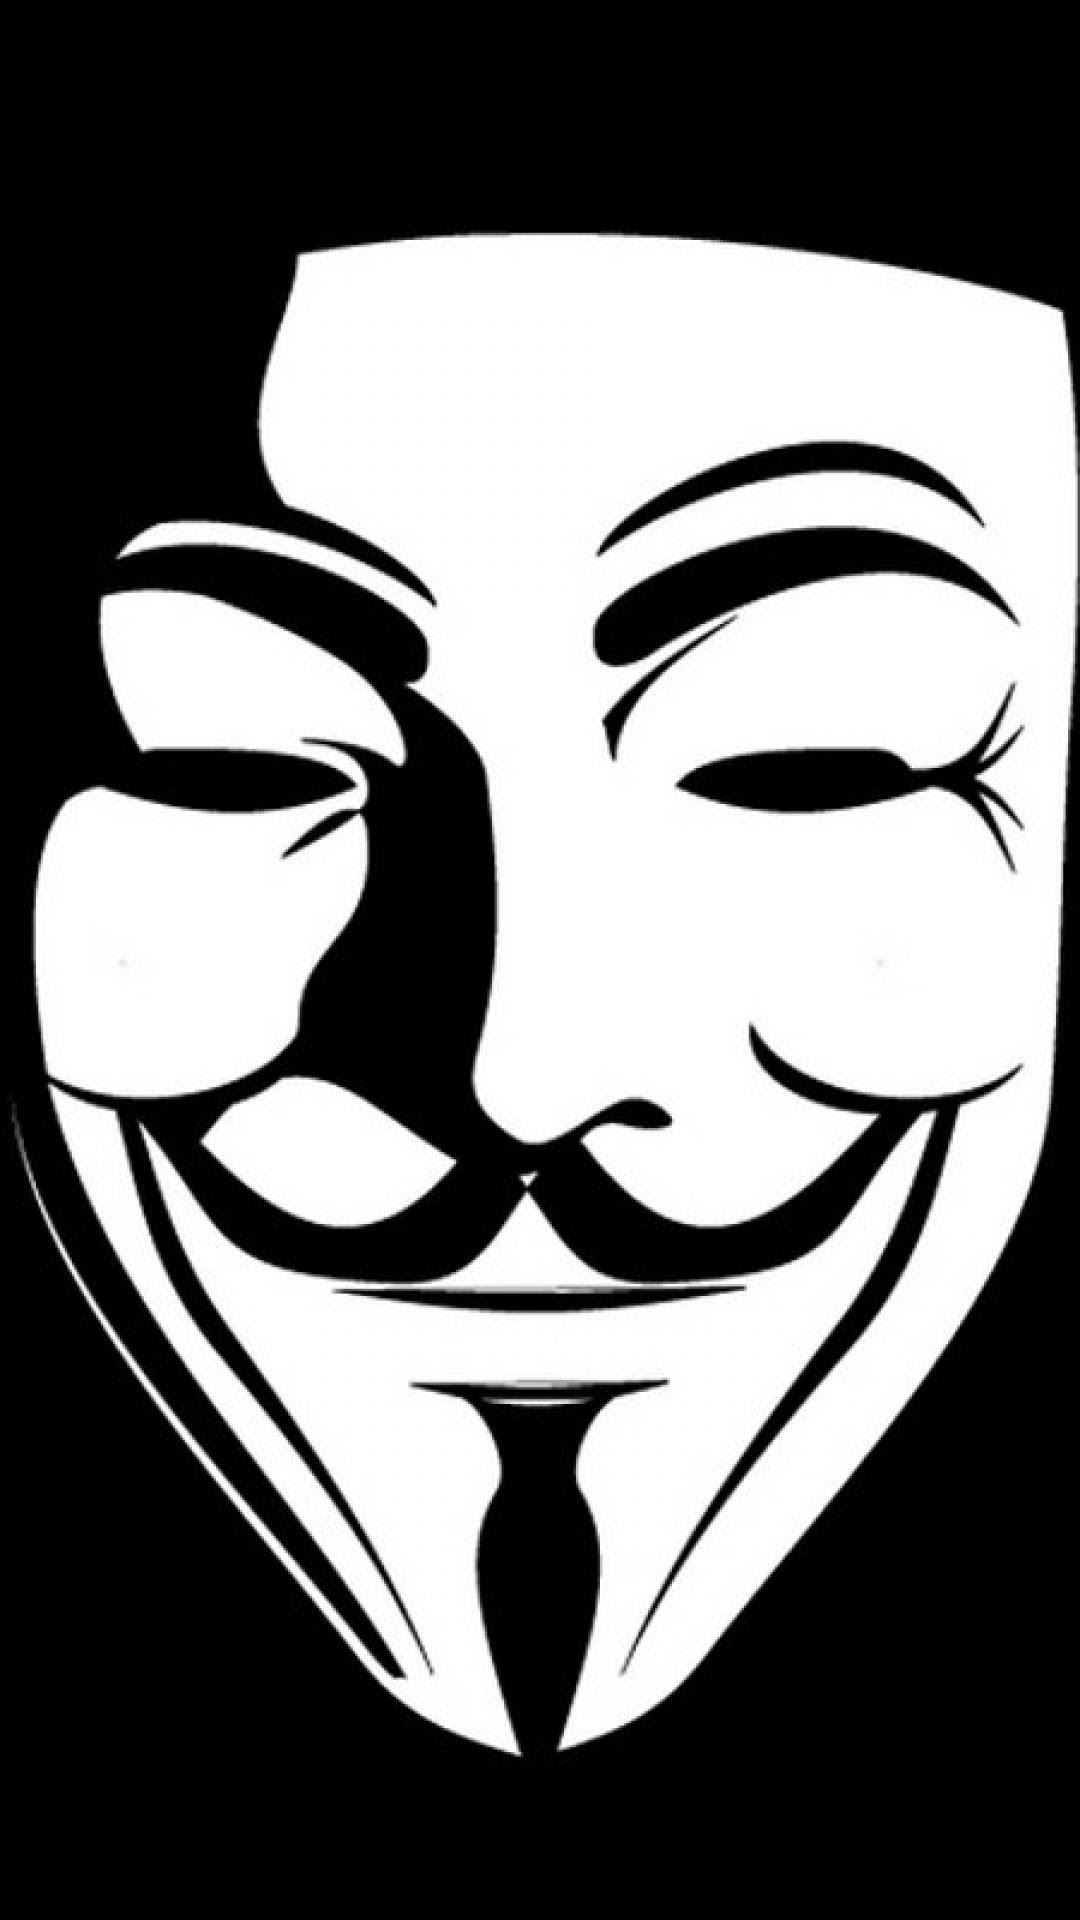 V For Vendetta Mask Vector At Getdrawings Free Download